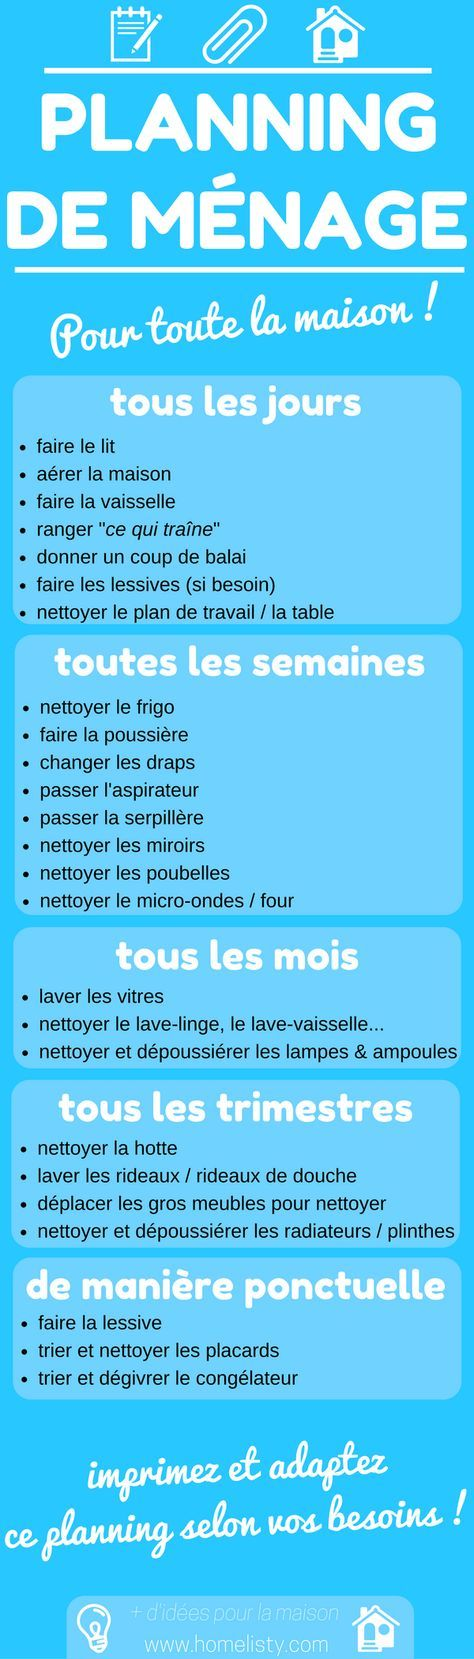 166 best Idées pour la maison images on Pinterest Tips and tricks